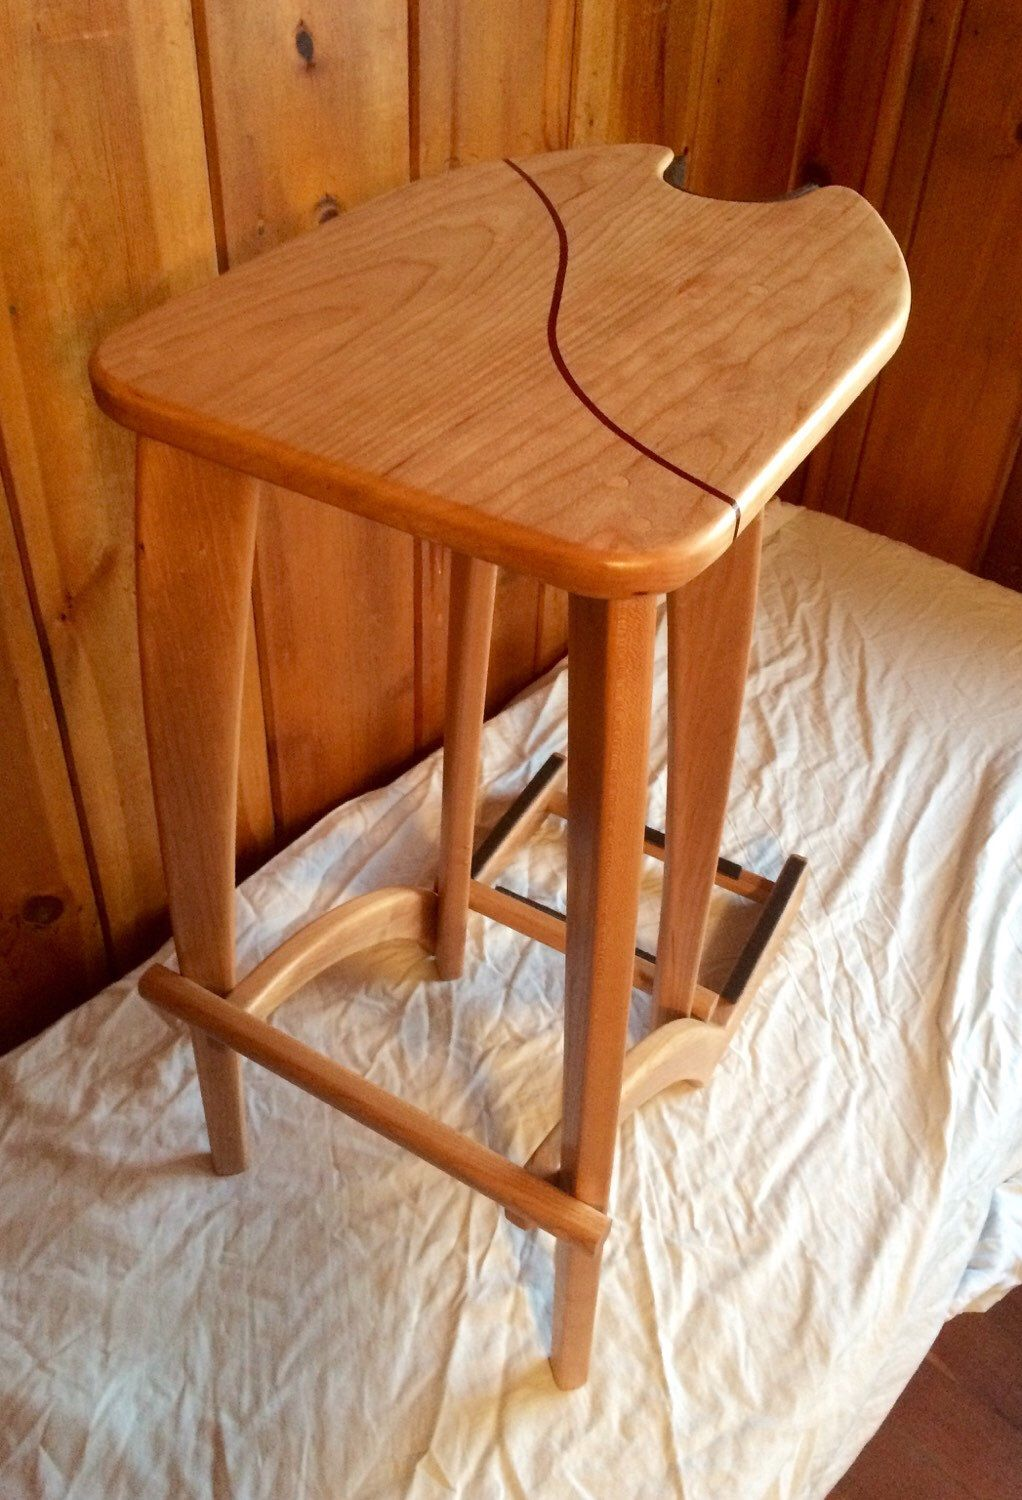 Fabulous Pin By Kathy Winters On Music In 2019 Wooden Guitar Stand Ocoug Best Dining Table And Chair Ideas Images Ocougorg